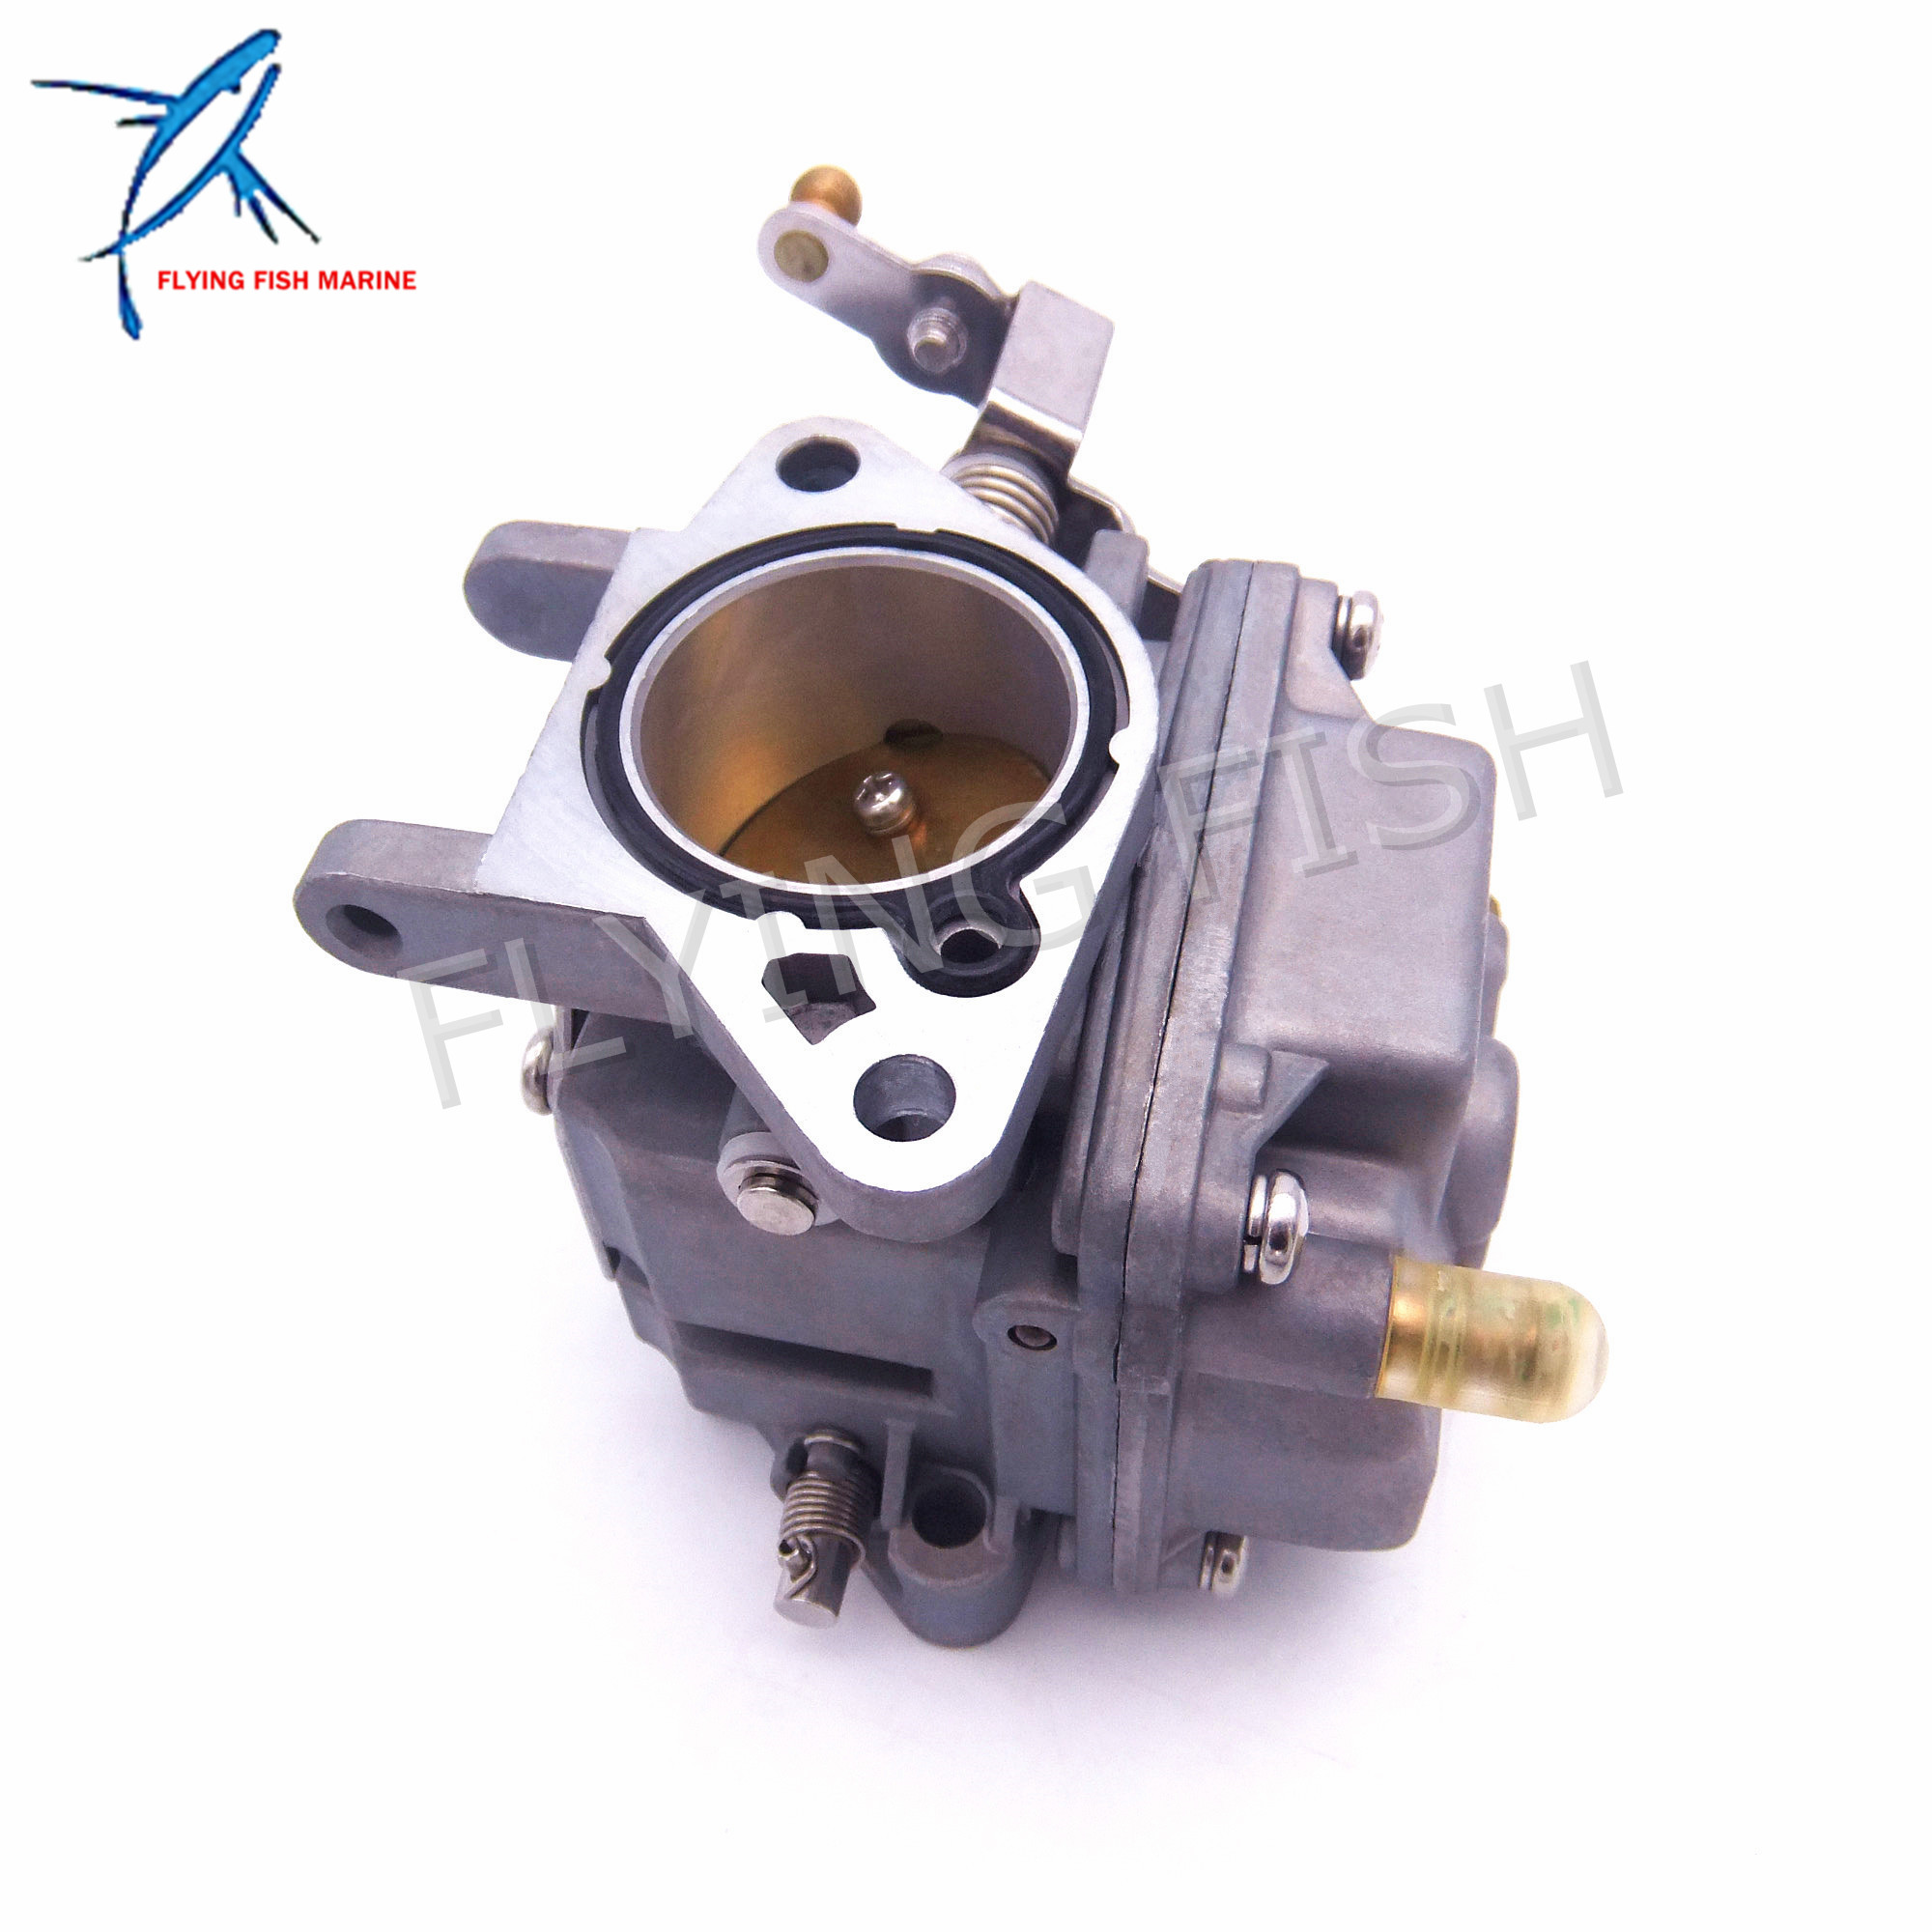 Outboard Engine Boat Motor Carburetor Assy 69P-14301-00  69S-14301-00  for Yahama 2-stroke E25B E30H  25B 30H Free Shipping